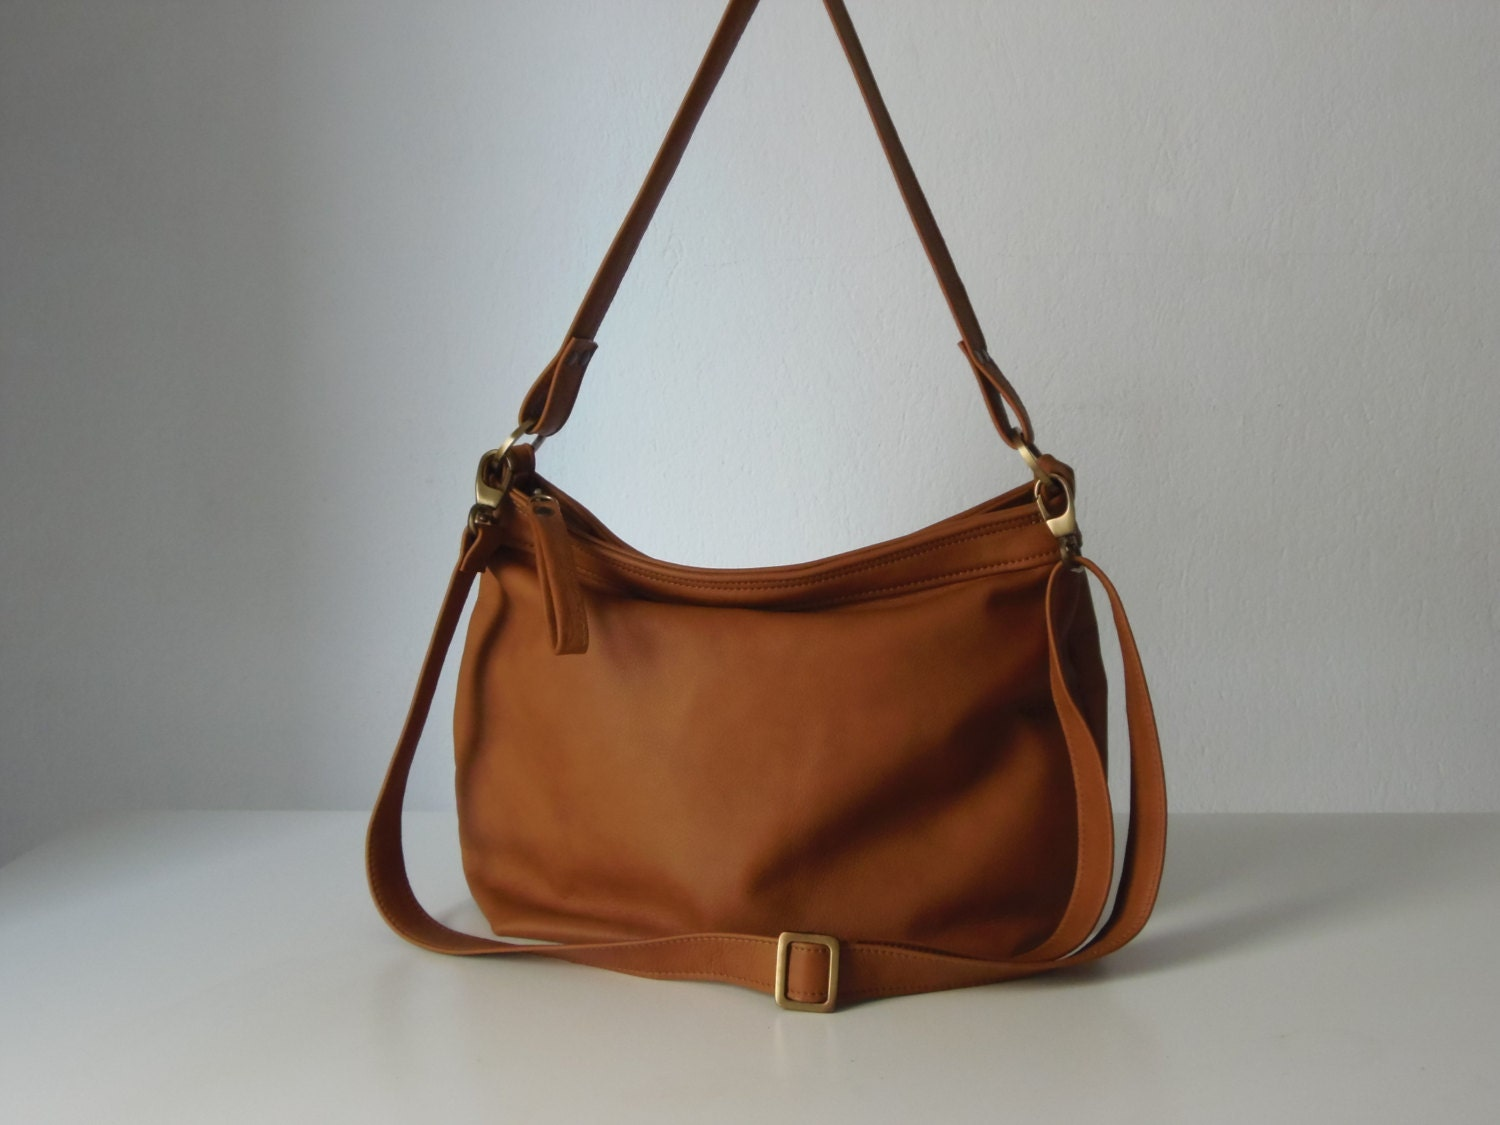 Tan leather hobo bag Leather hobo purse Soft leather bag